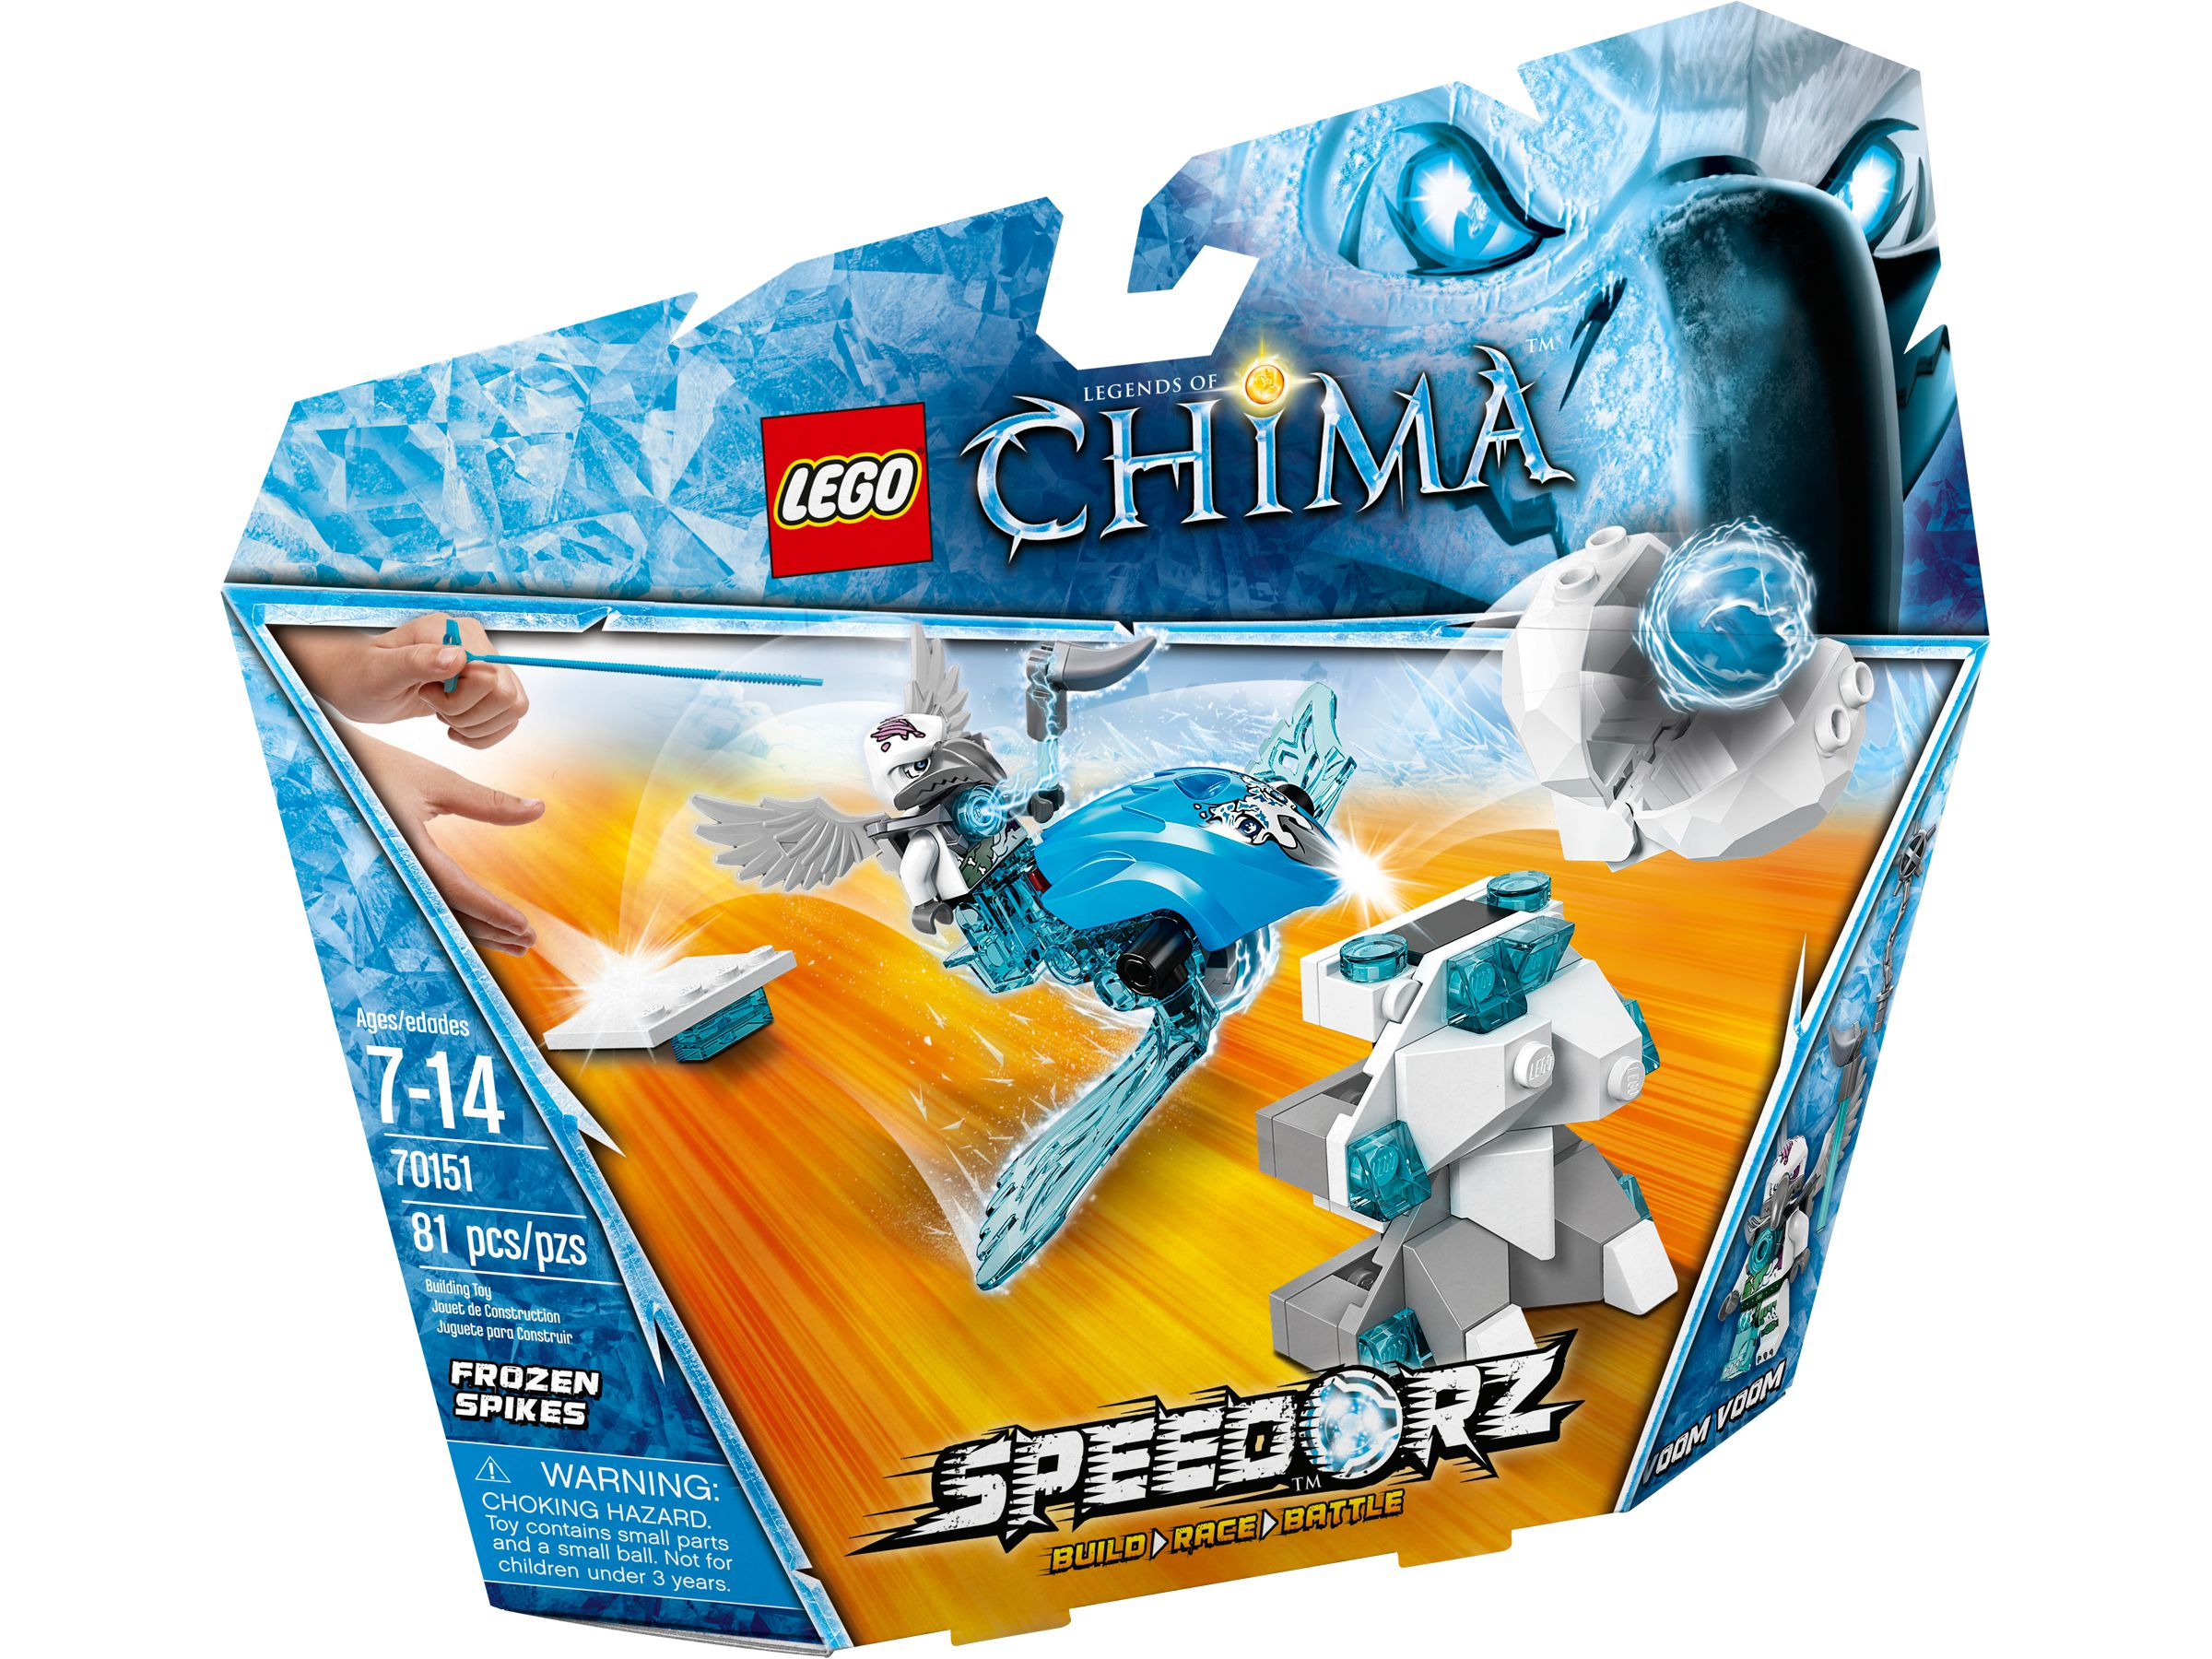 LEGO Legends Of Chima 70151 Eis-Stachel LEGO_70151_alt1.jpg